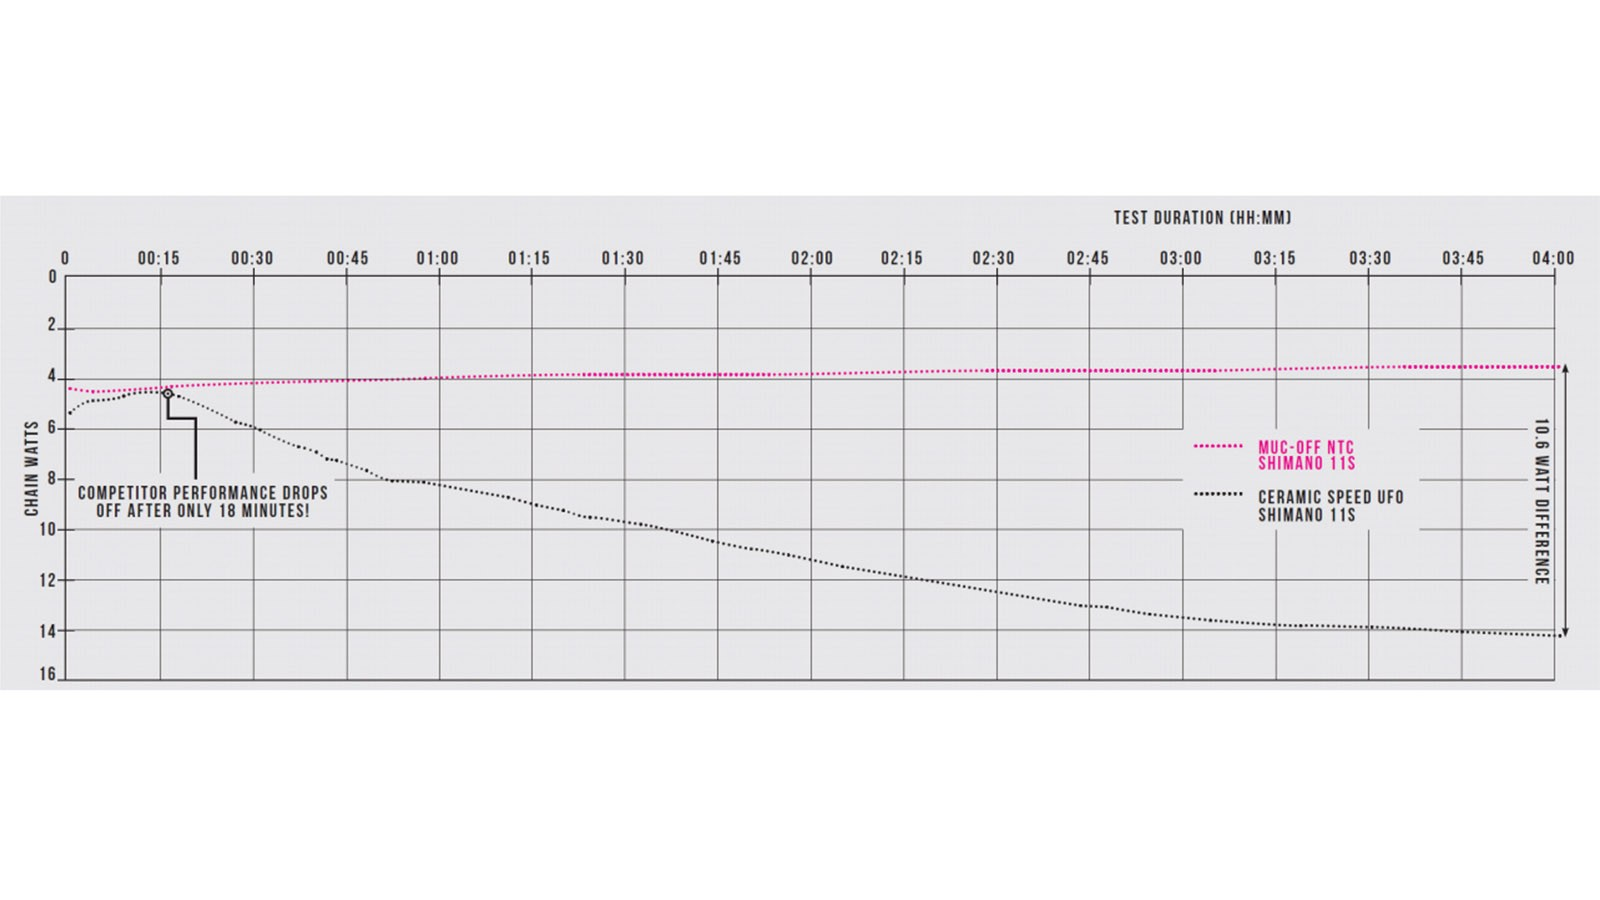 This is the graph Muc-Off presented in the info booklet about its new Nano Tube Chain